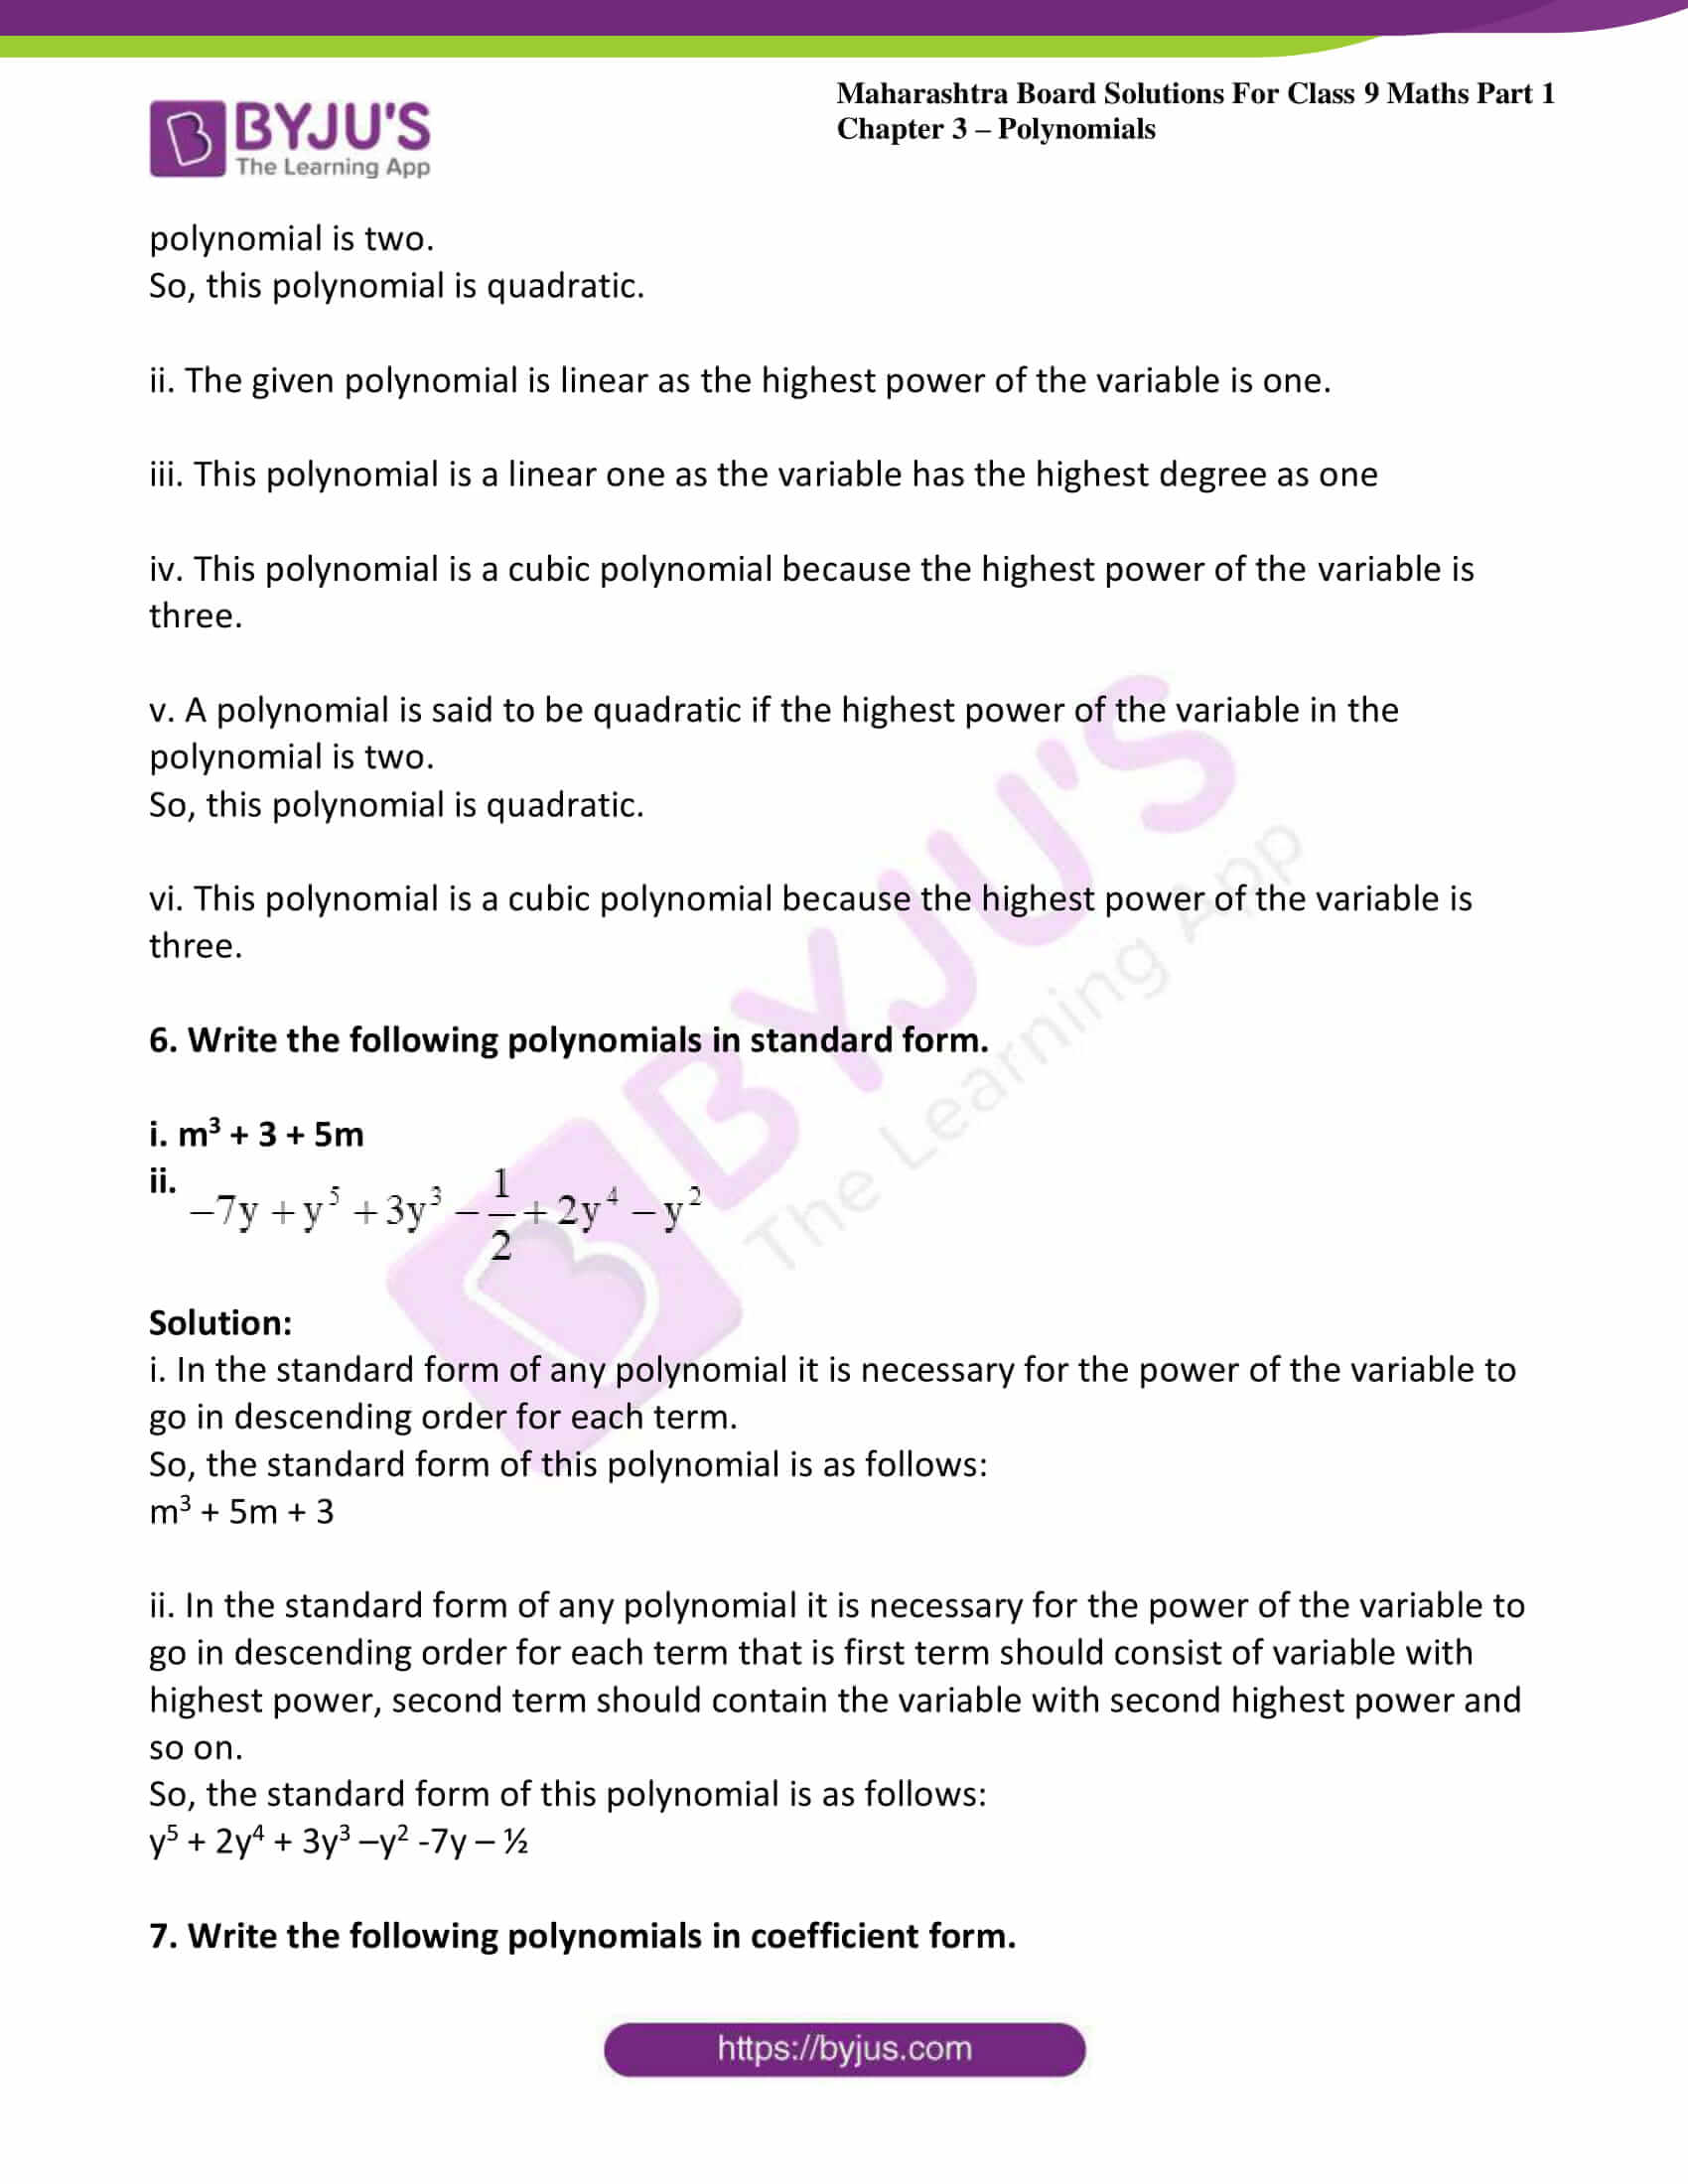 msbshse sol class 9 maths part 1 chapter 3 polynomials 04